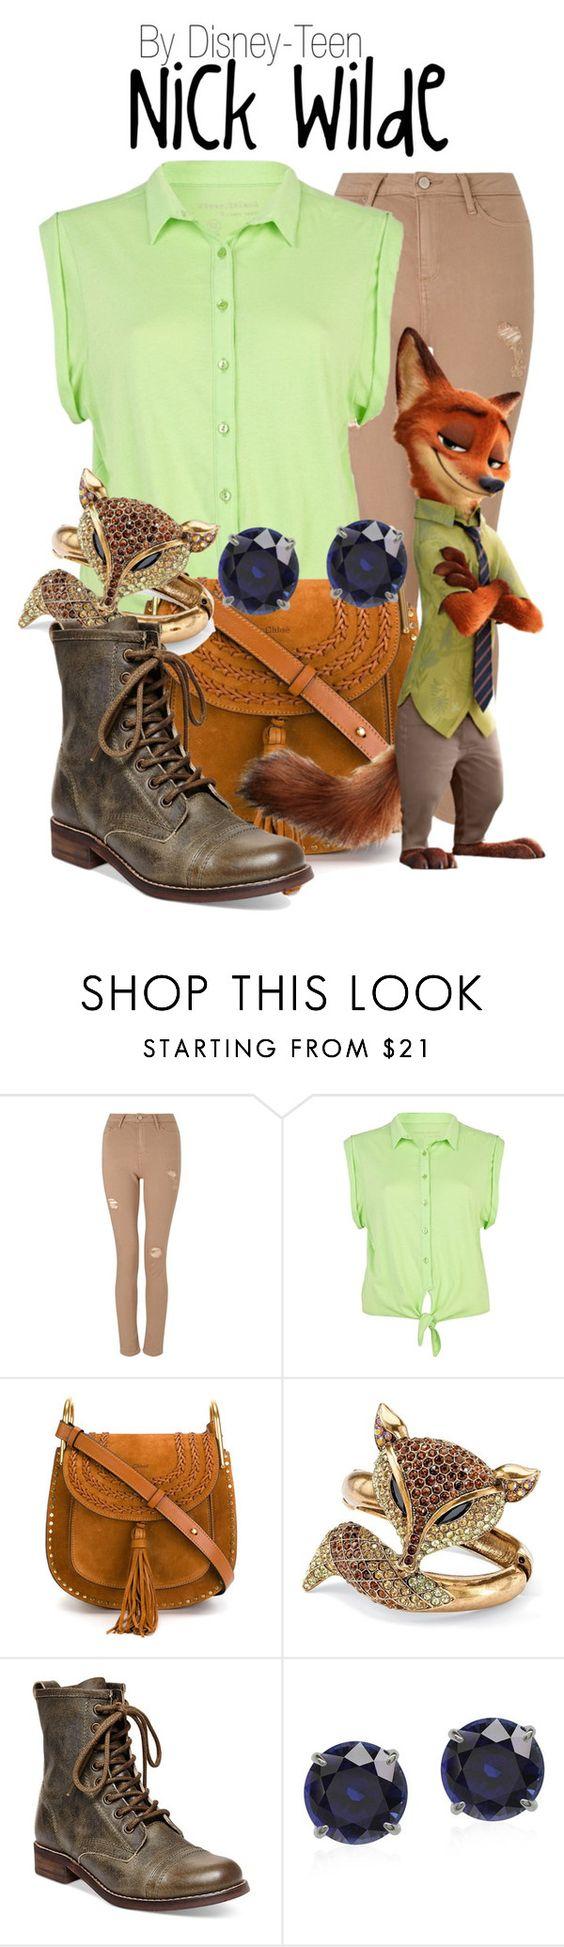 """Nick Wilde"" by disney-teen ❤ liked on Polyvore featuring Miss Selfridge, River Island, Chloé, Palm Beach Jewelry, Steve Madden, disney, disneybound, disneyfashion and zootopia:"